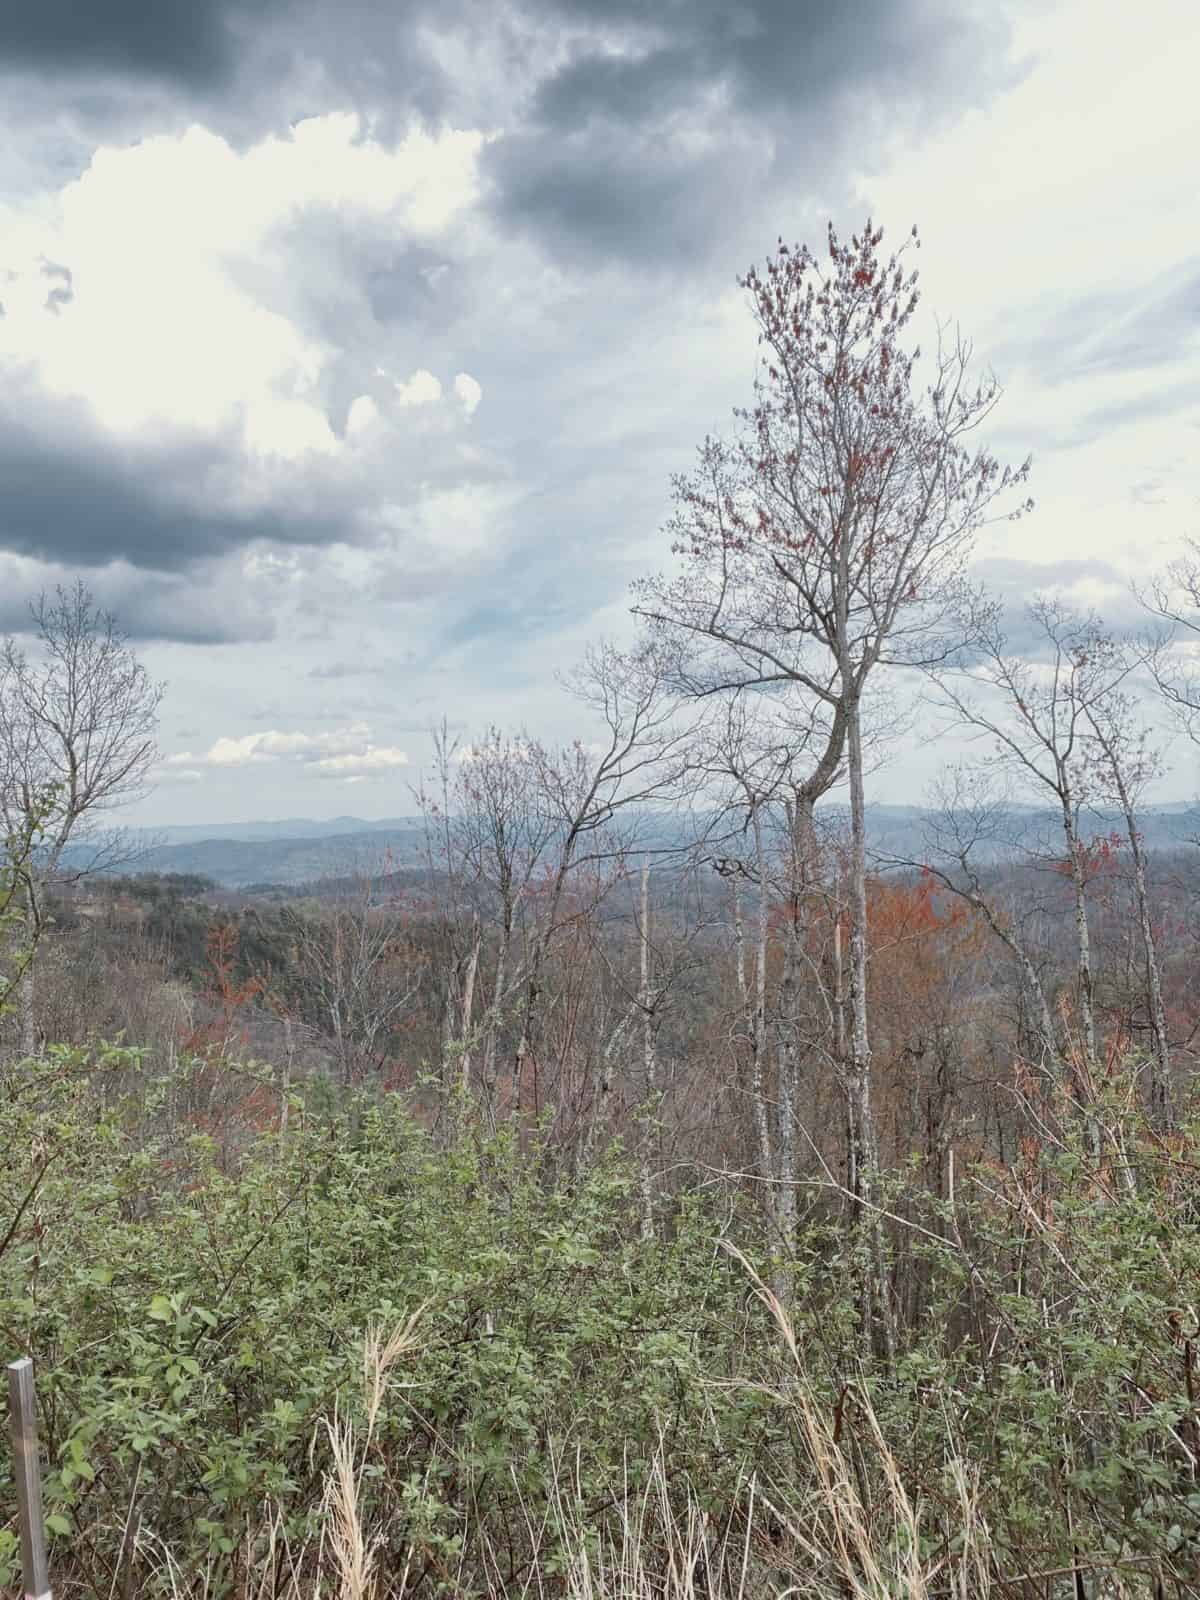 a picture of trees with mountains in the background and a cloudy sky